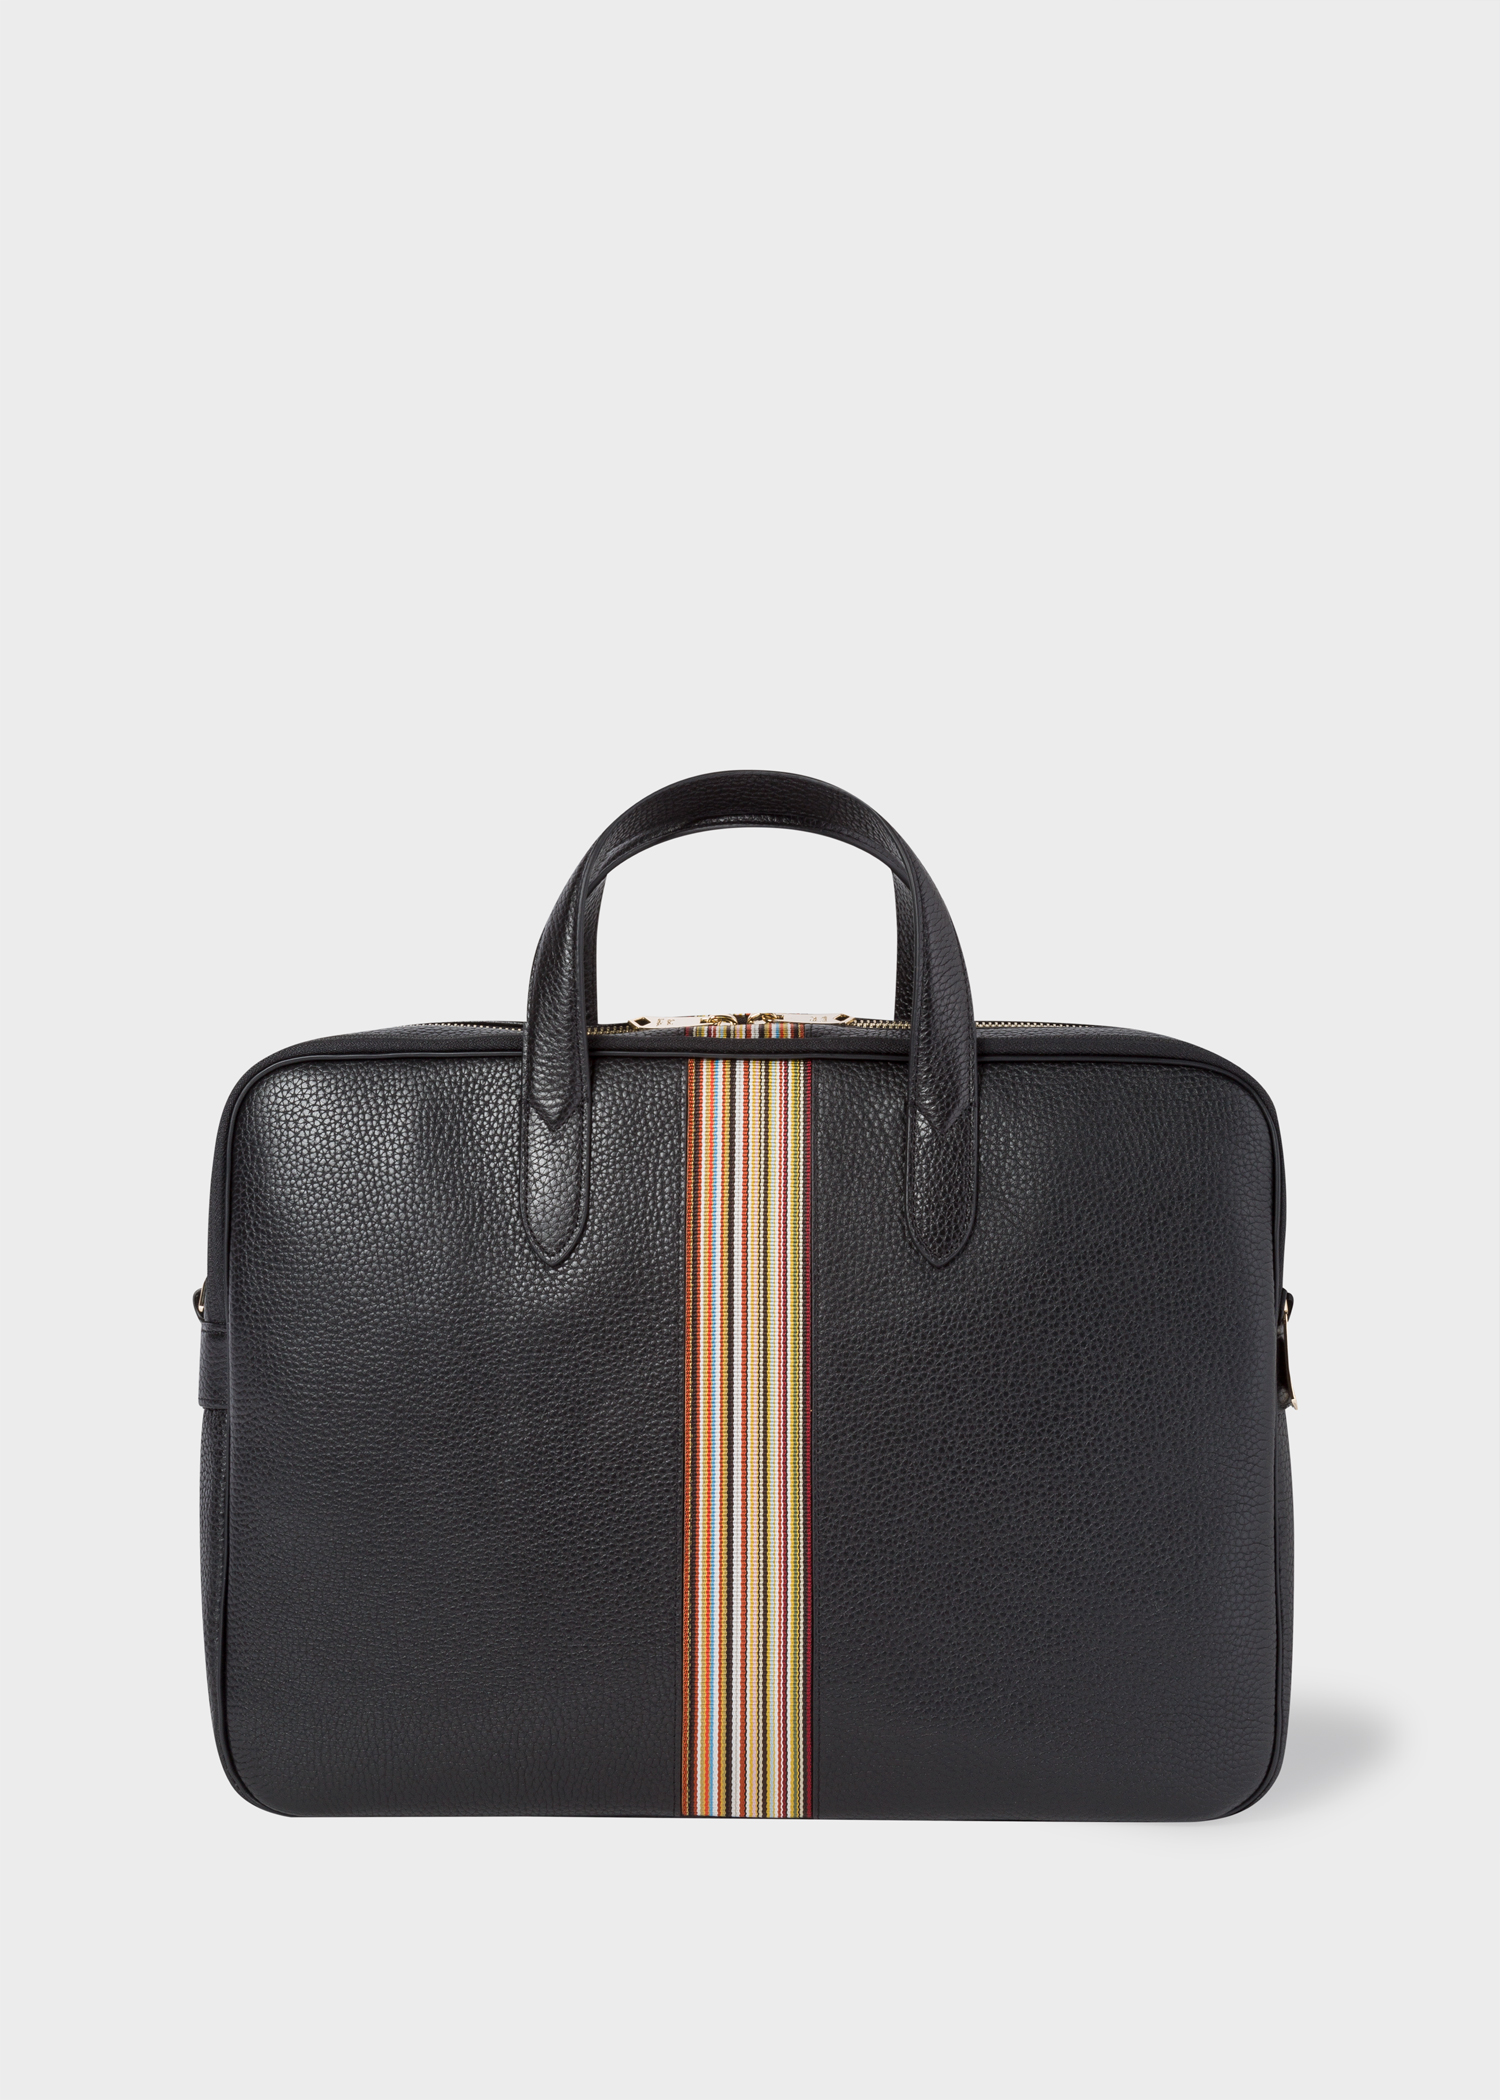 Porte Document Cuir Homme Porte Documents Homme Signature Stripe Noir En Cuir